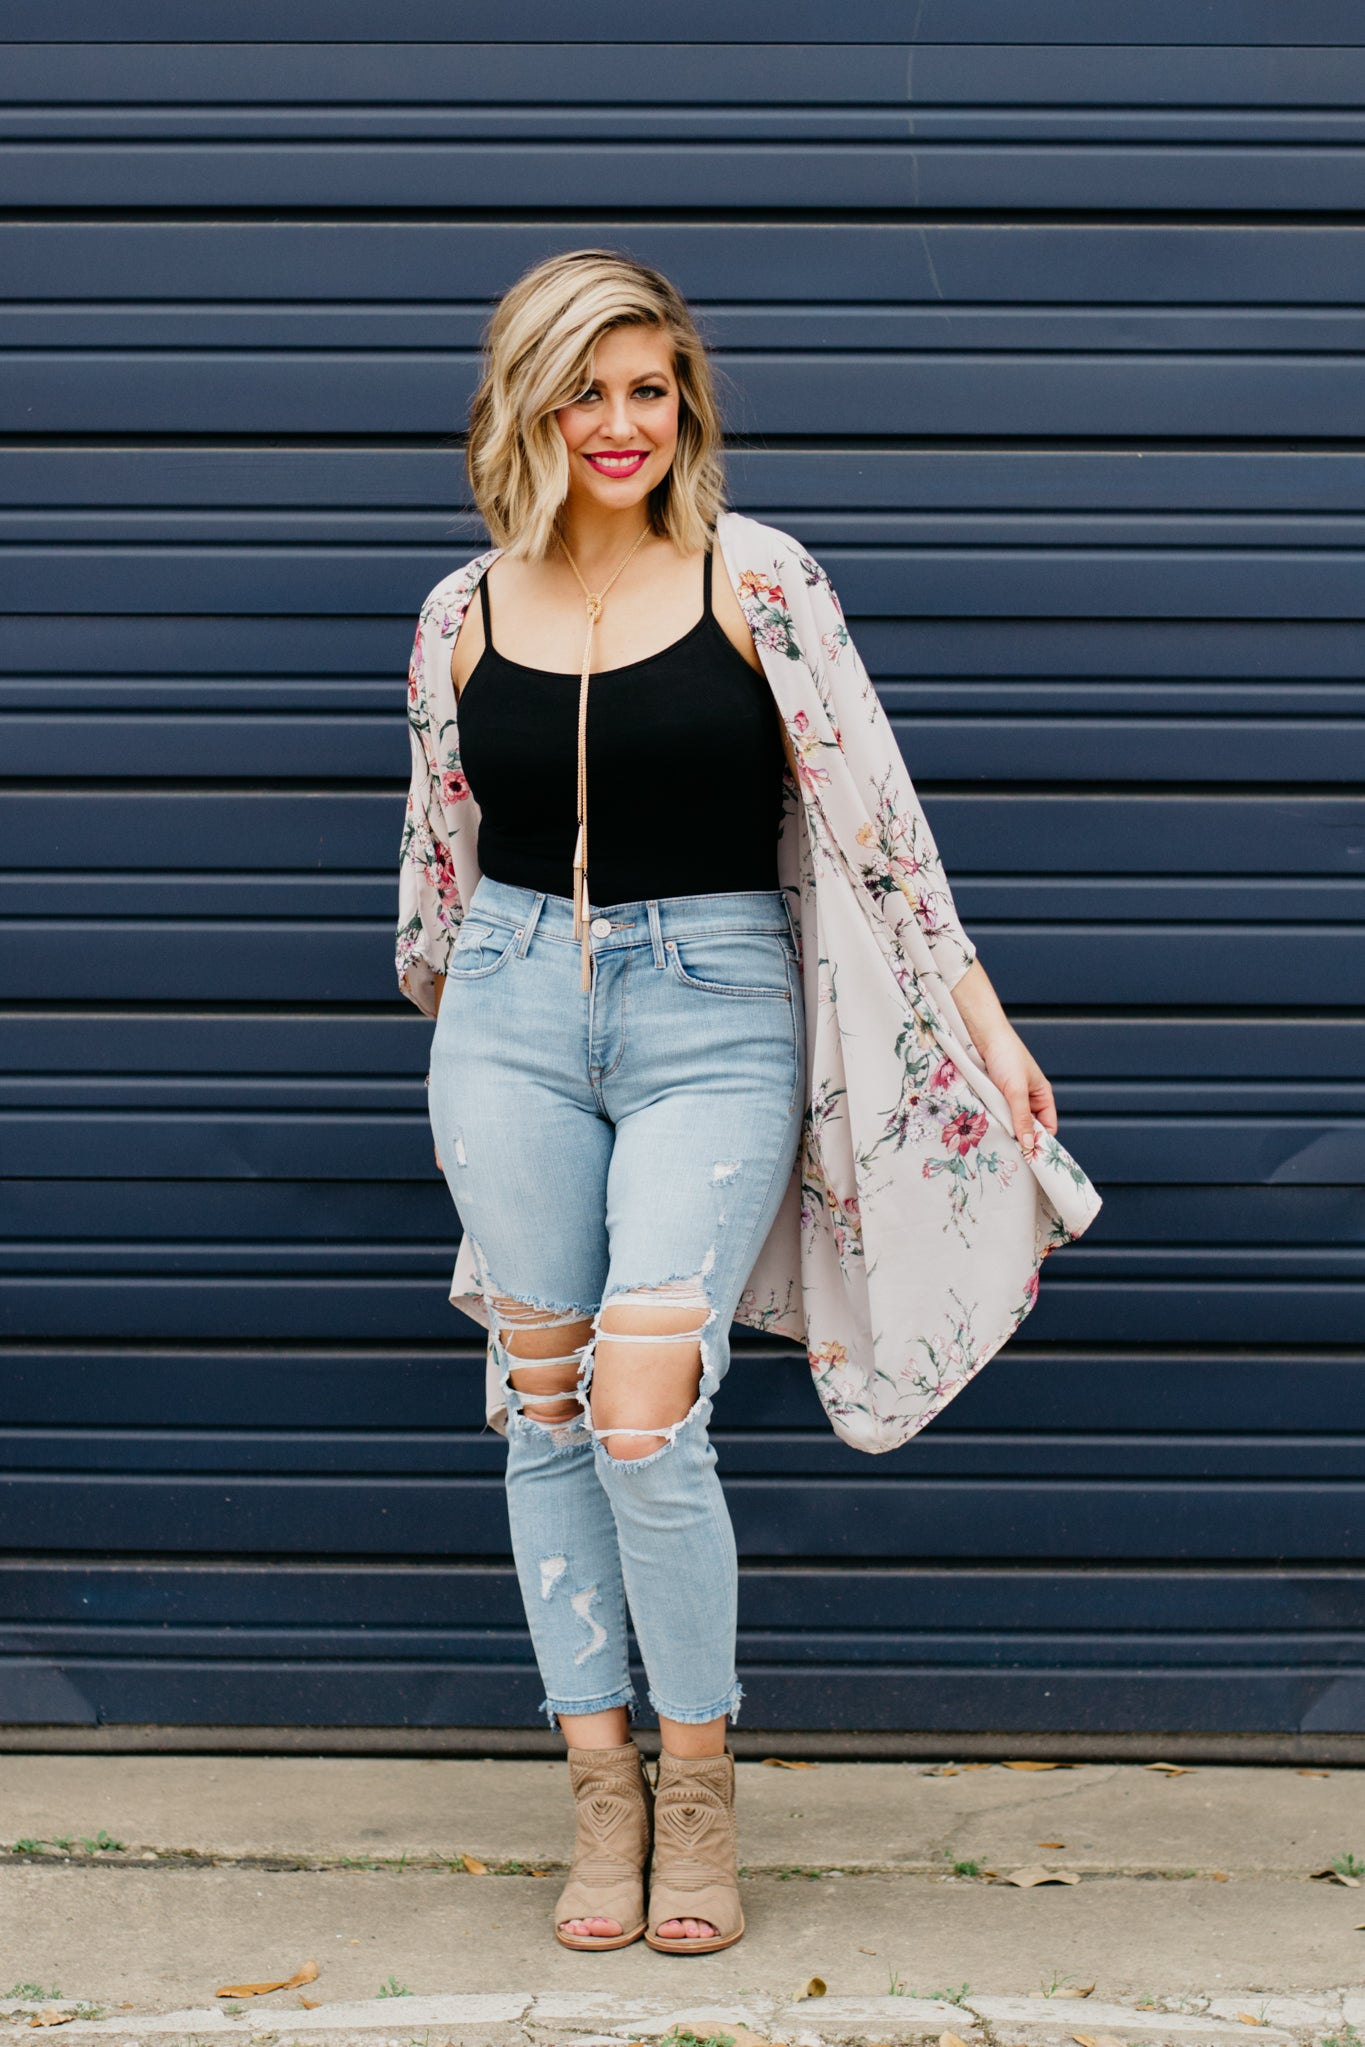 Spring Floral Kimono with black camisole and gold tassel necklace